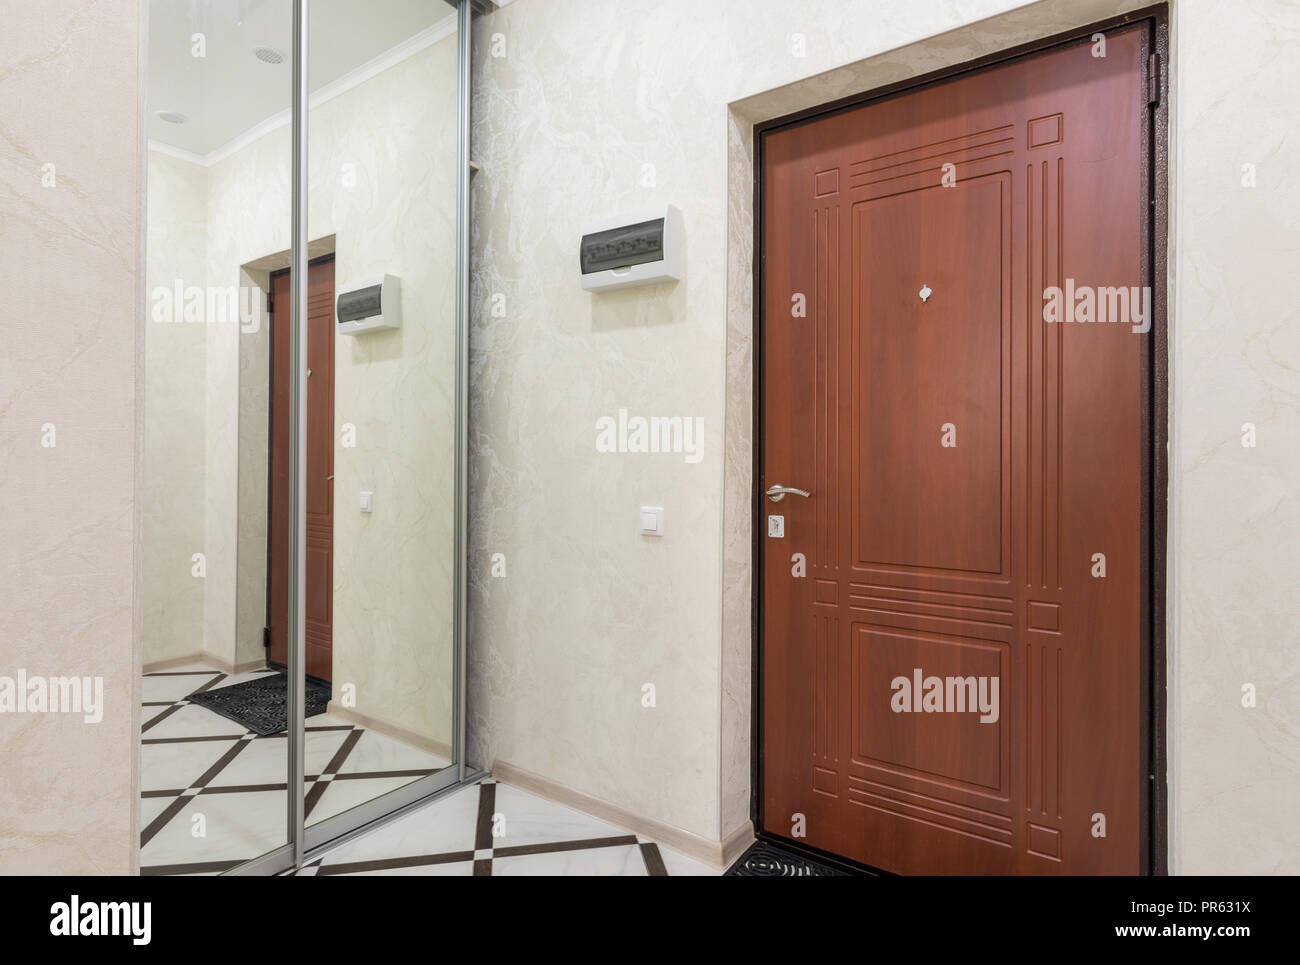 Sliding Wardrobe In The Hallway Of A Small Apartment Stock